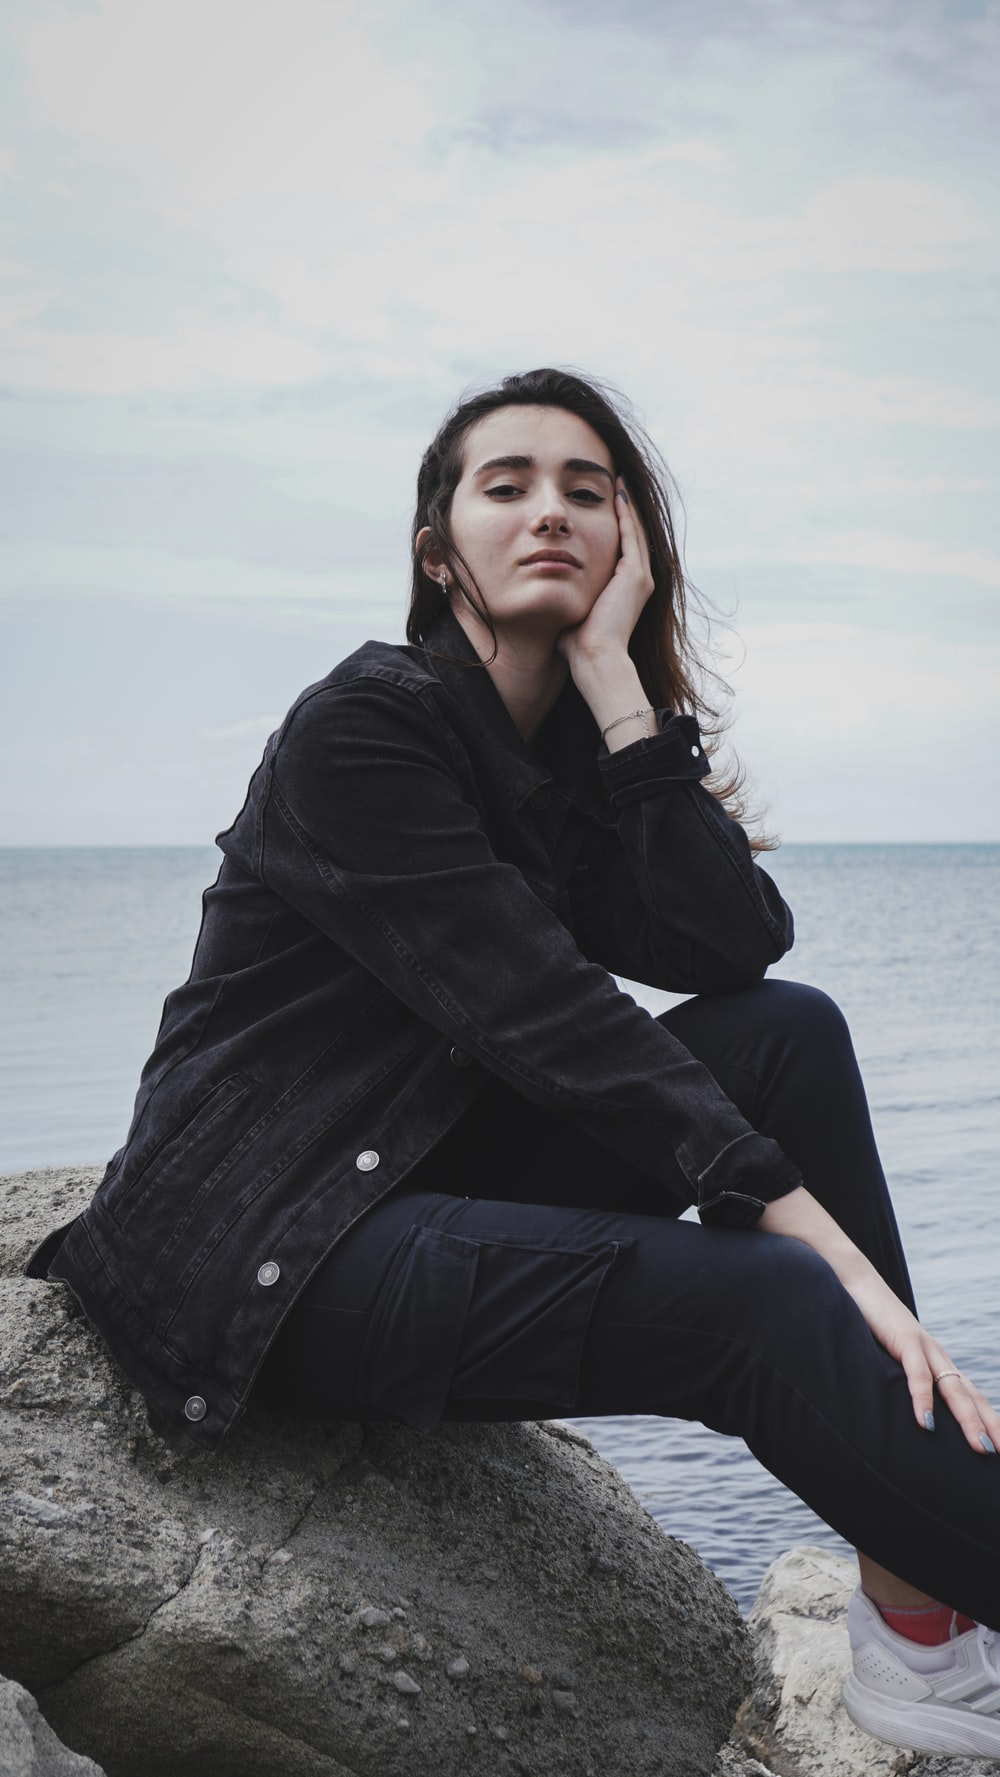 woman in black coat sitting on rock near sea during daytime